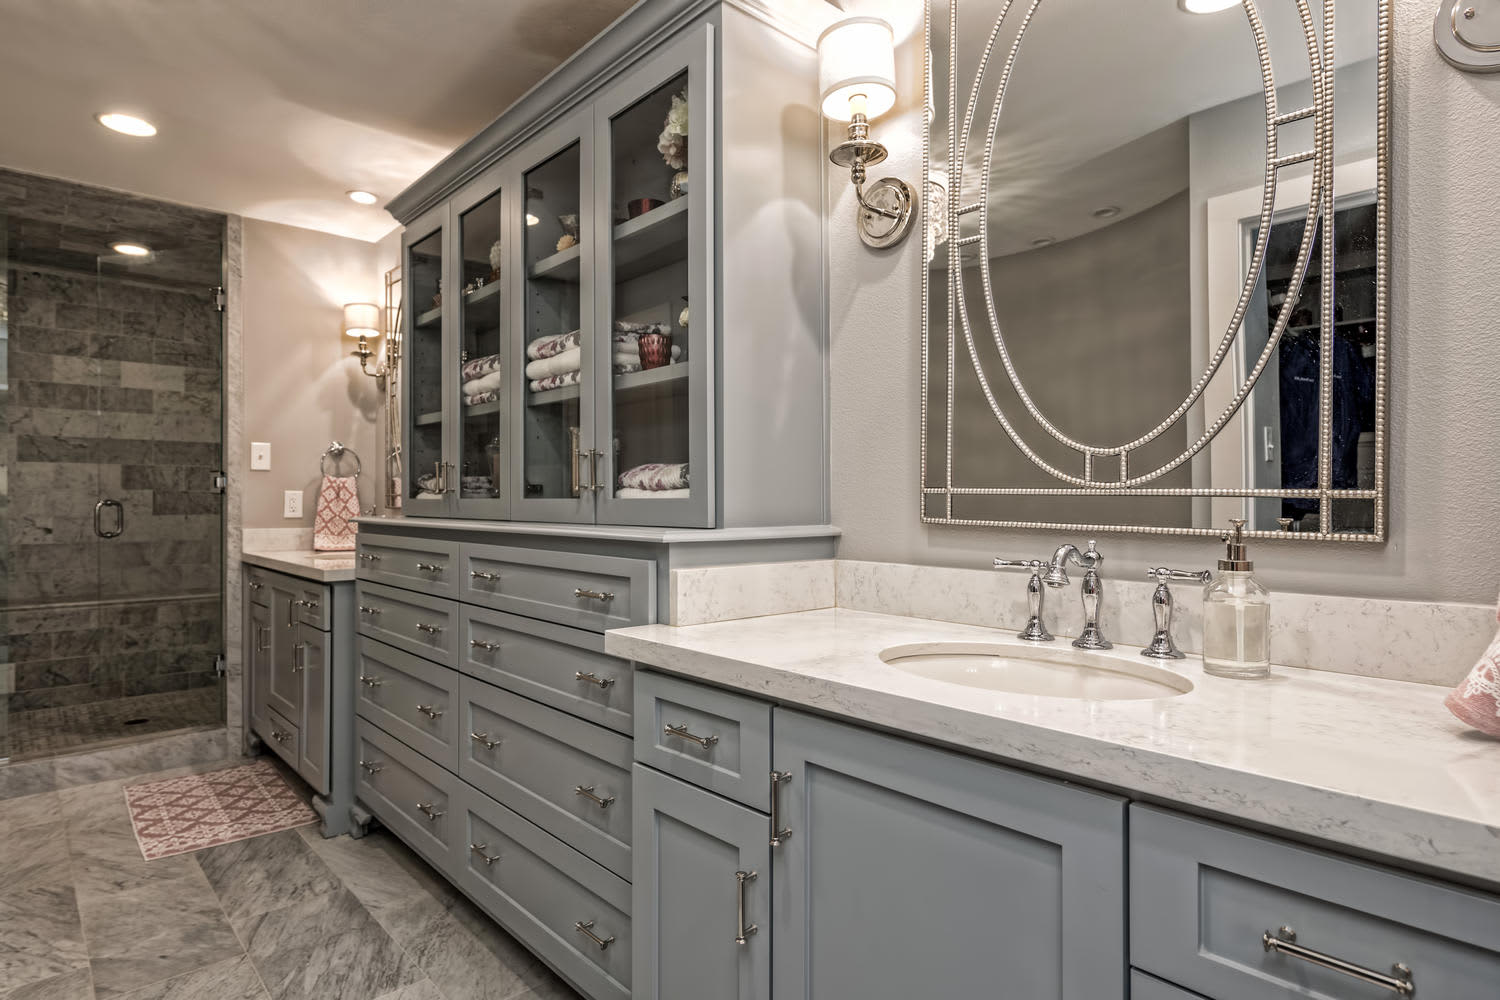 Fixer Upper Waco House For Sale Photos April 2019 Apartment Therapy